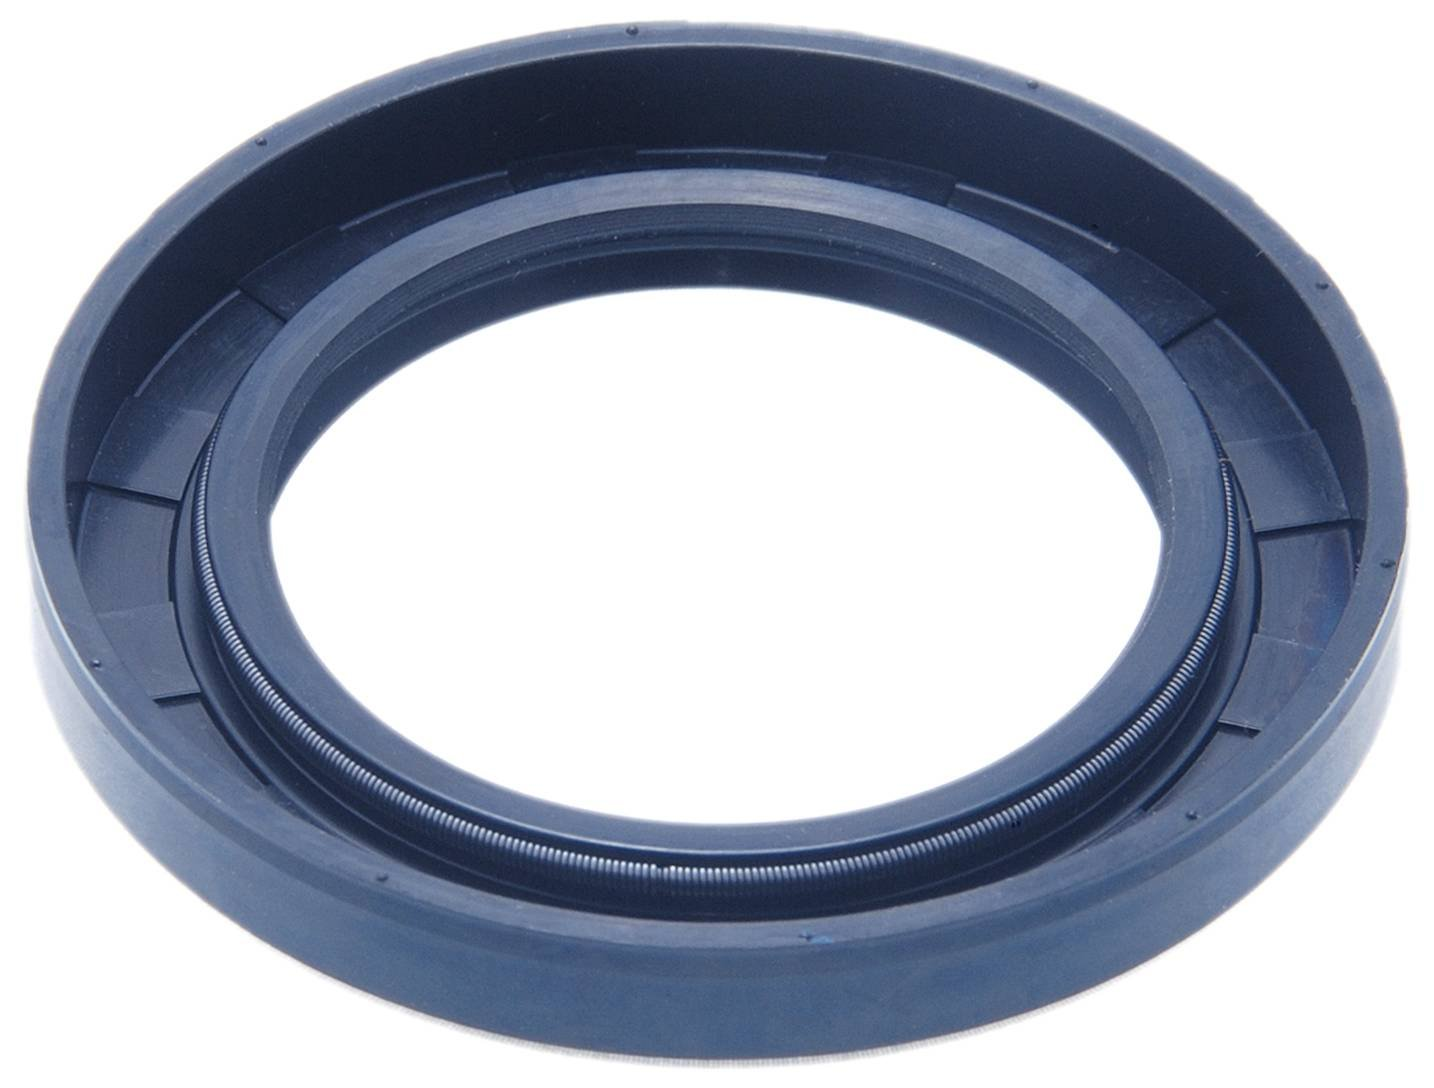 90311-47001 / 9031147001 - Oil Seal Rear Hub (47X71X9, 2) For Toyota Febest